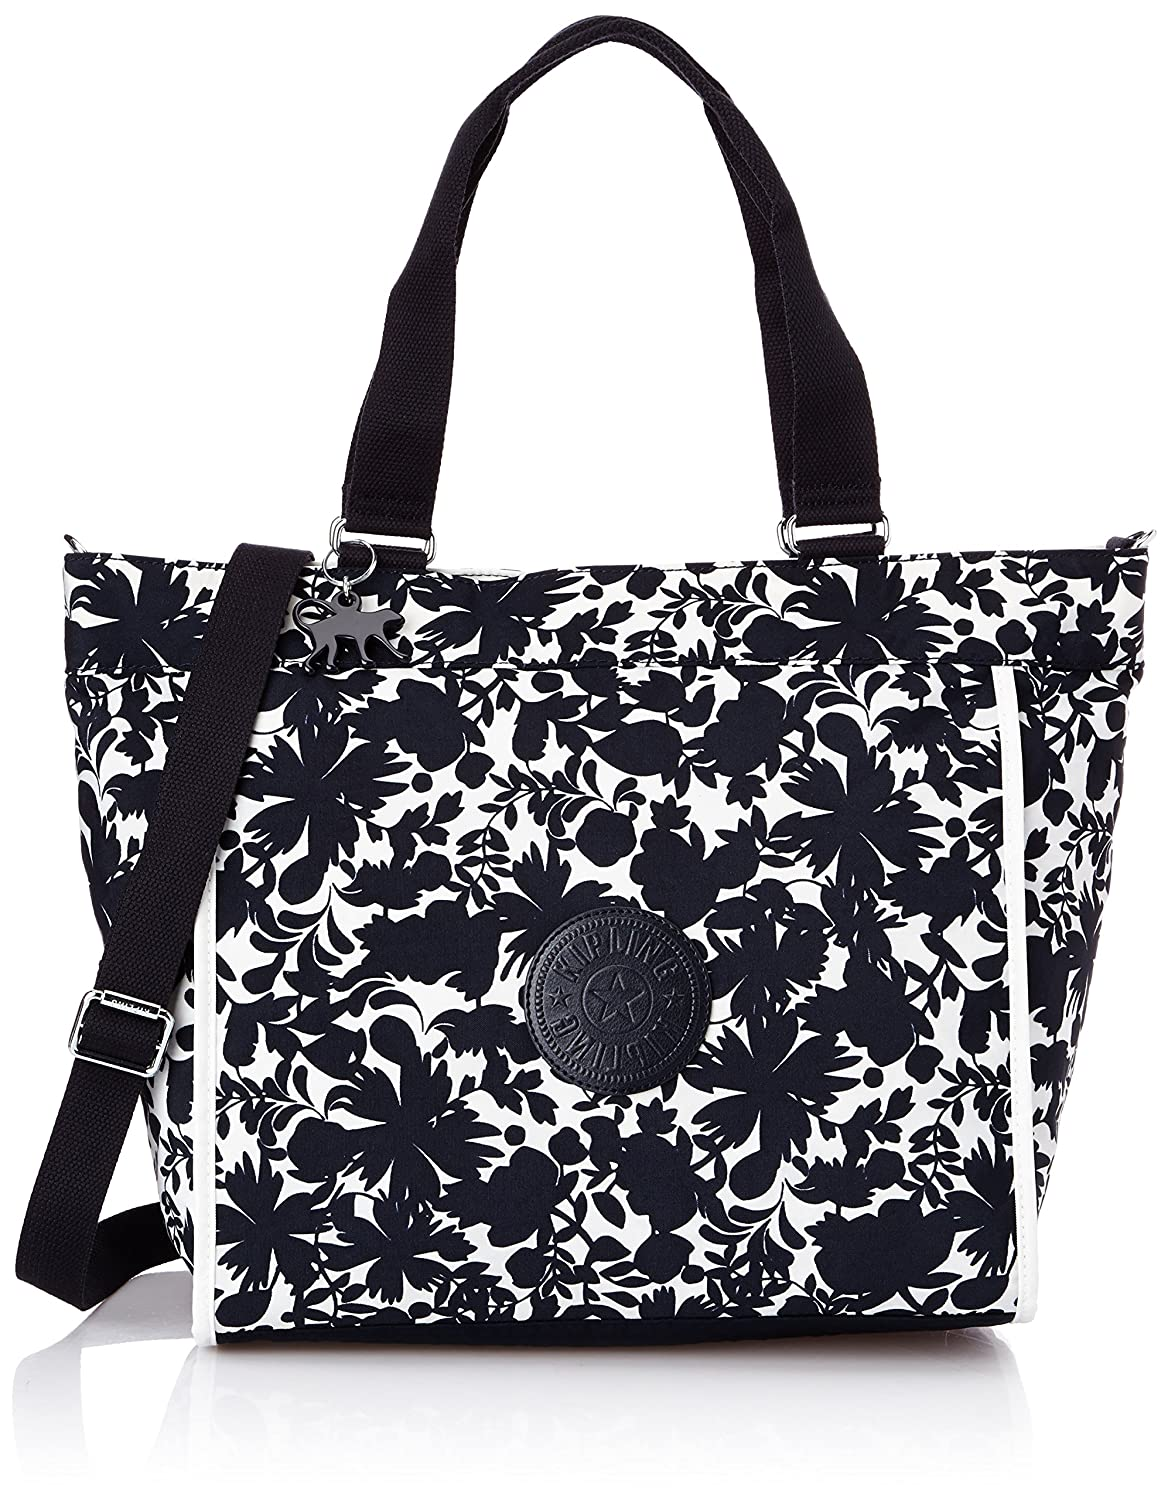 [キプリング] キプリング KIPLING Amazon公式 正規品 NEW SHOPPER L トートバッグ K16659 M13(fiesta animal) K16659 B00UJB4ZRO Blue Flower Tf Blue Flower Tf